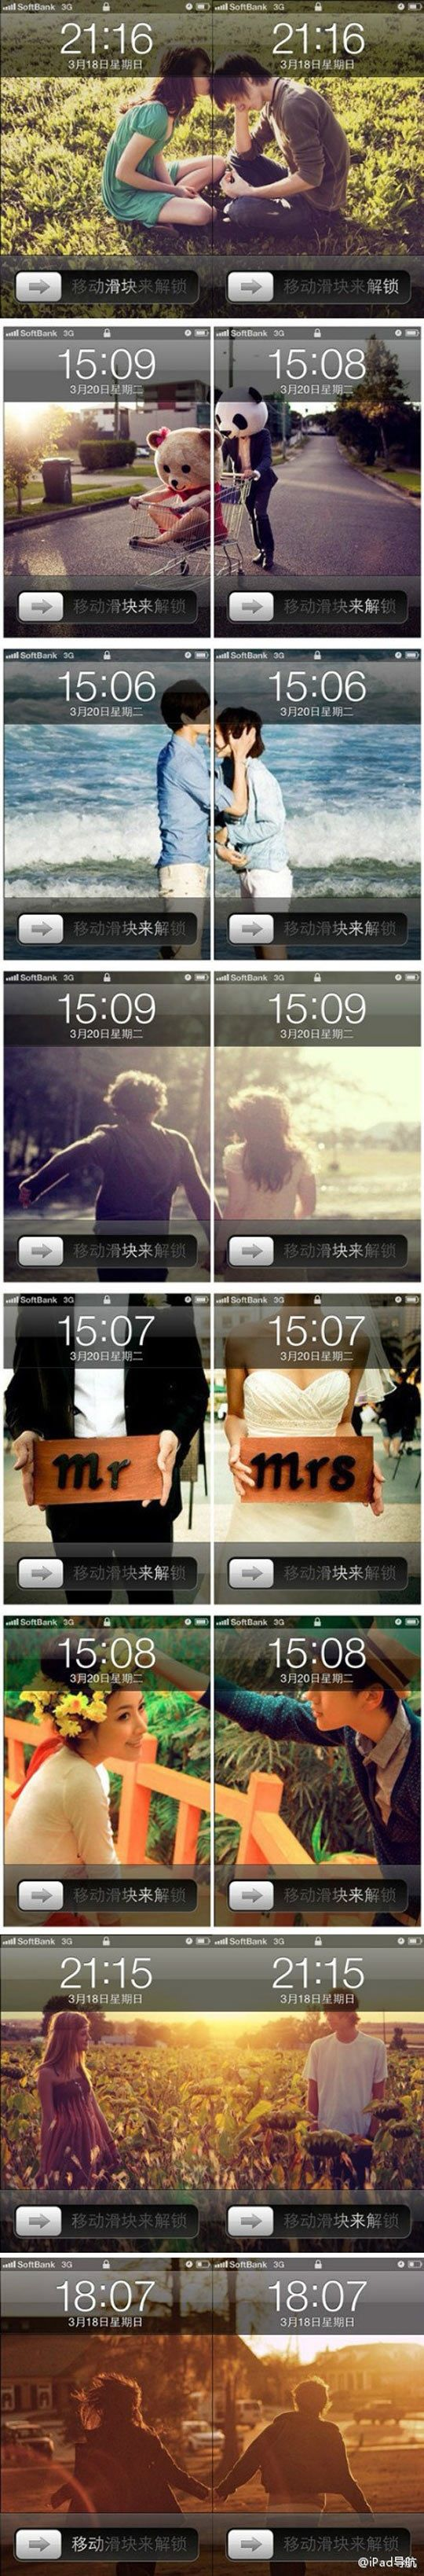 iPhone wallpapers for couples.